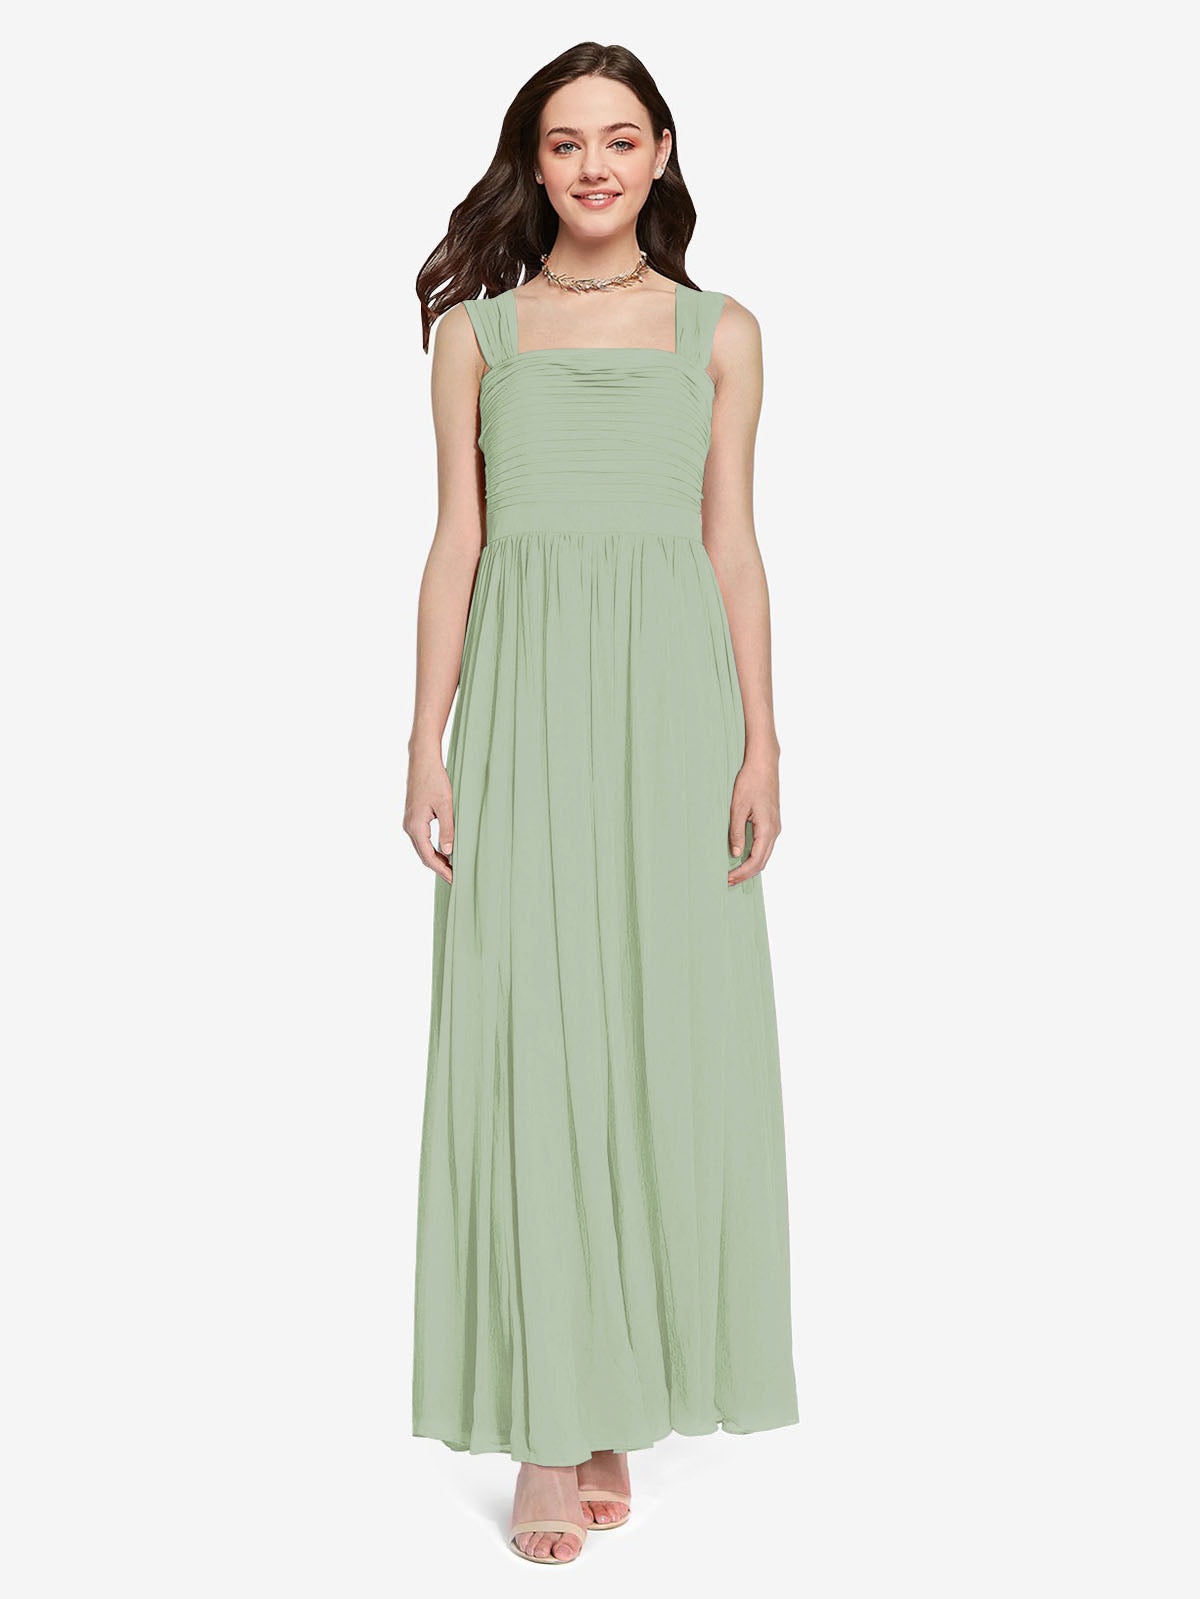 Long A-Line Square Sleeveless Smoke Green Chiffon Bridesmaid Dress Aldridge